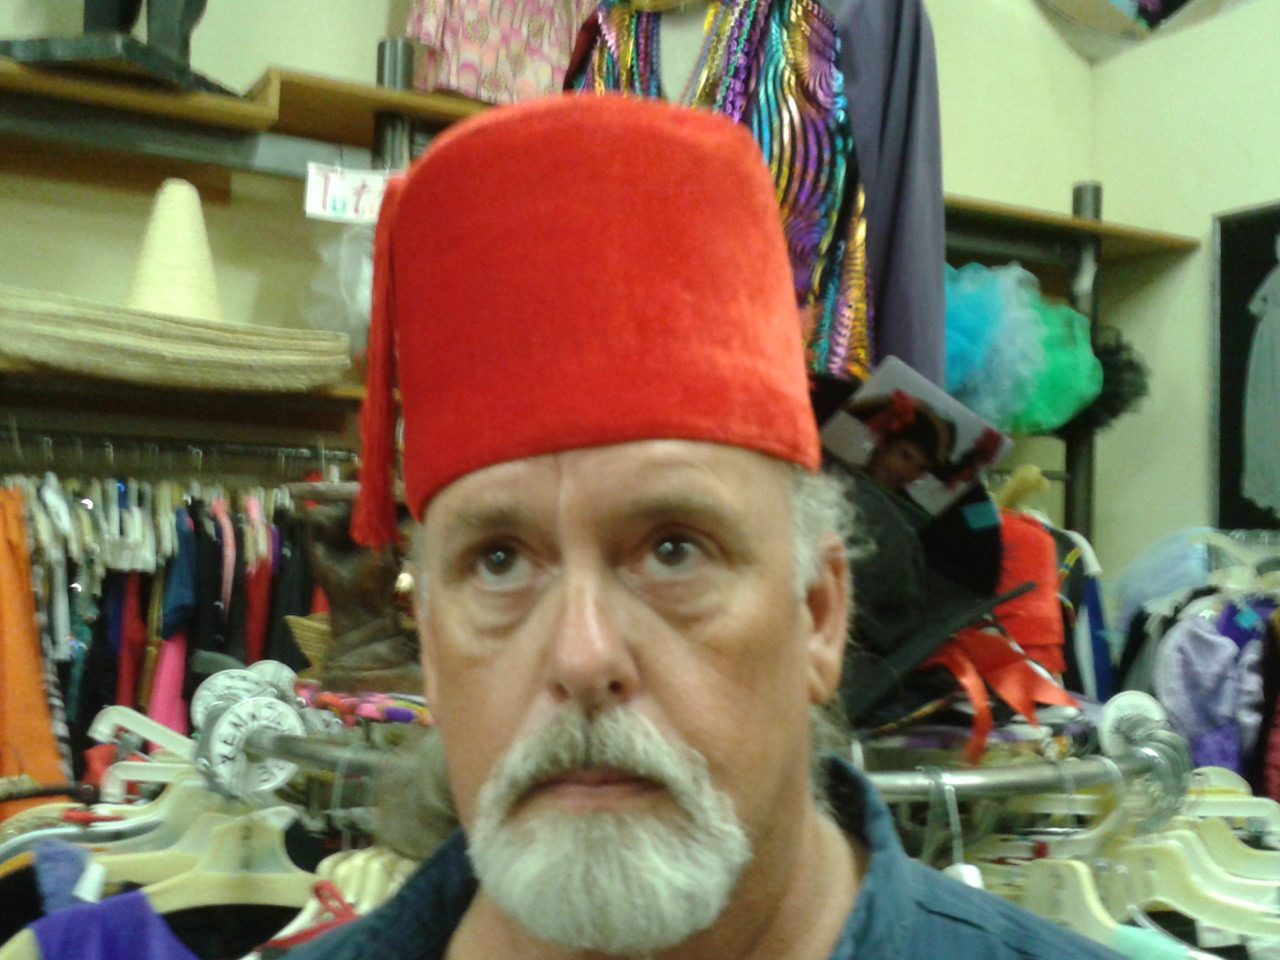 Hubby in a fez because fezzes are cool